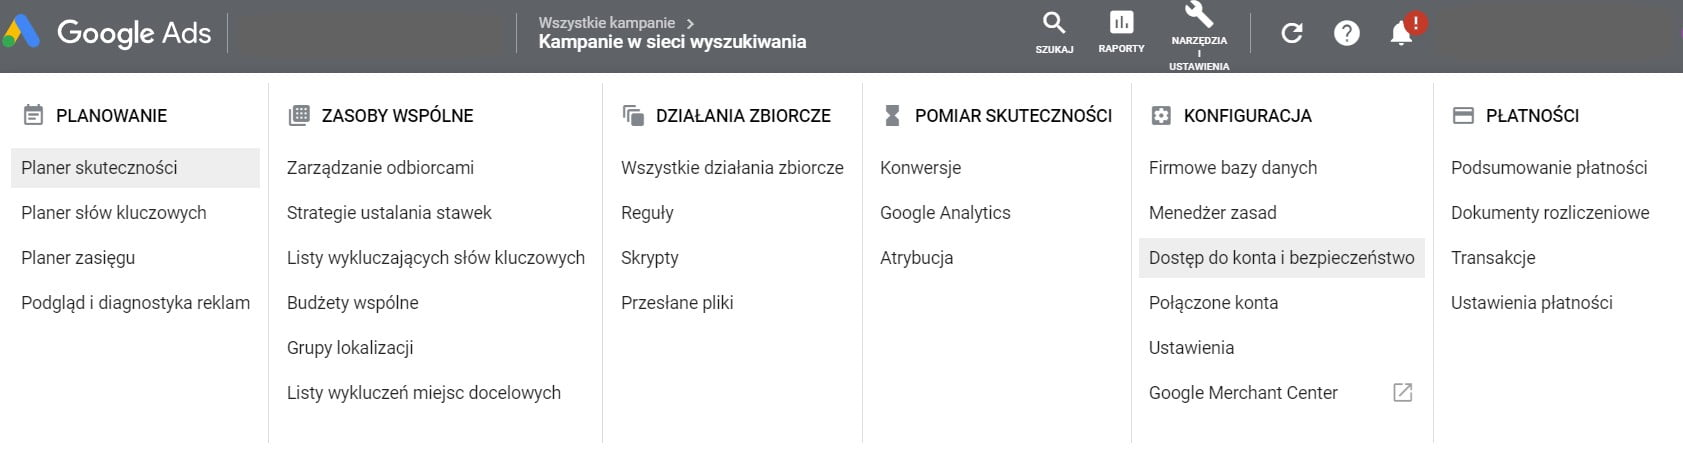 dostęp do konta google ads